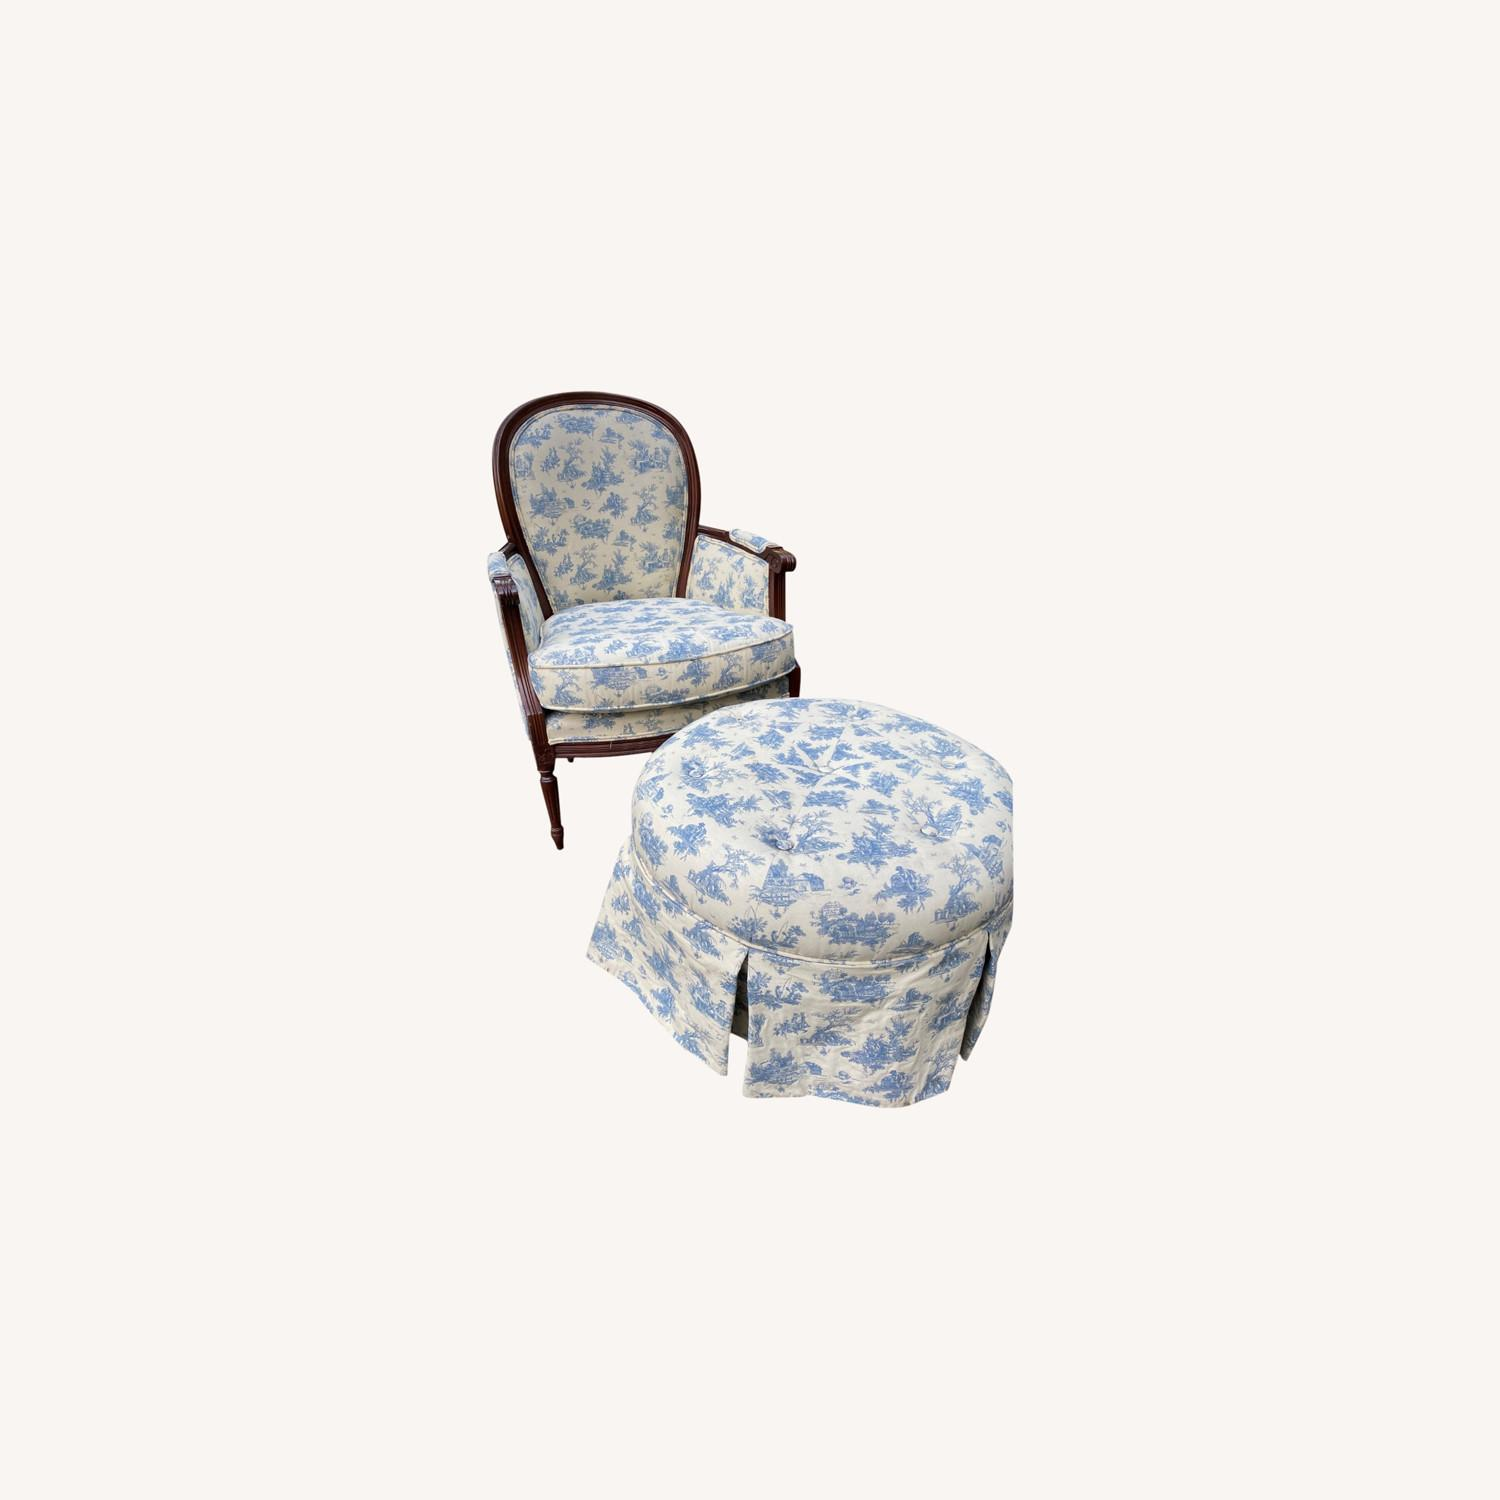 Bergere Chair and Ottoman - image-0